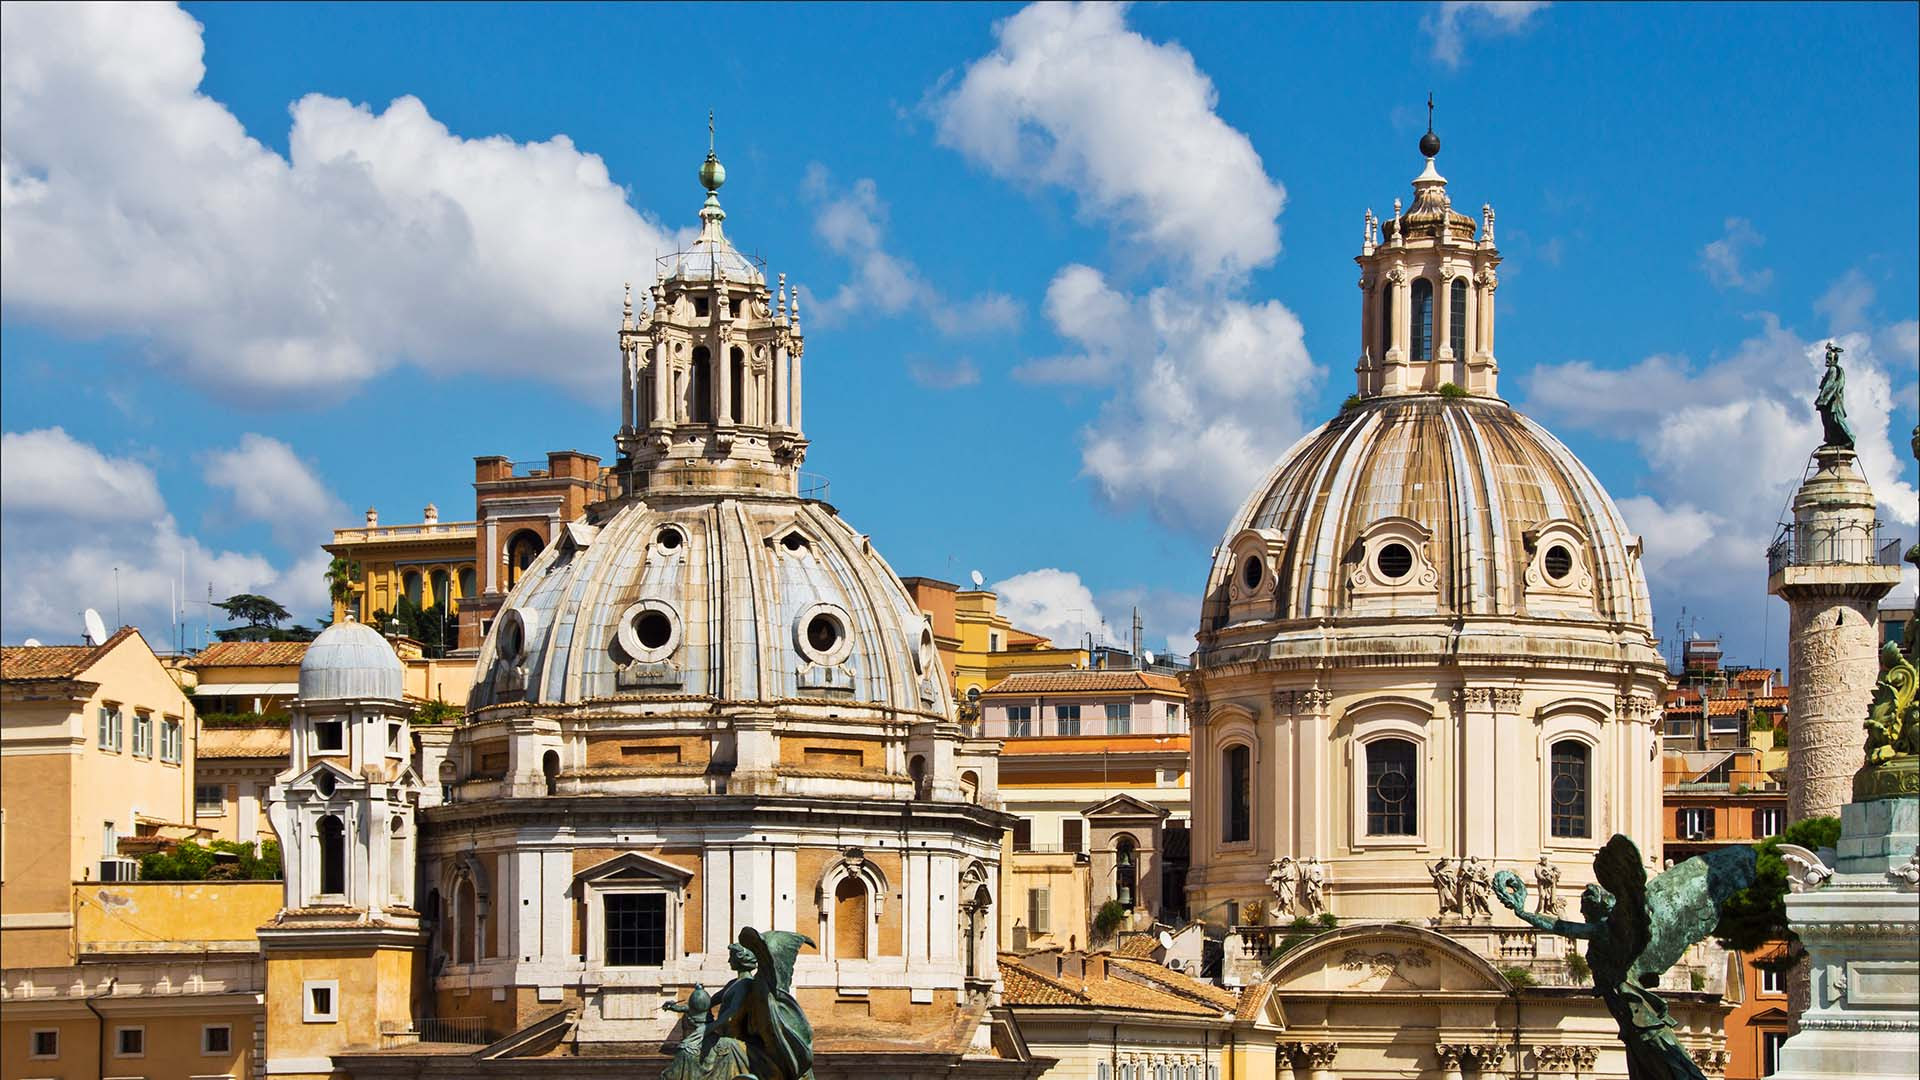 Domes in Rome, Italy